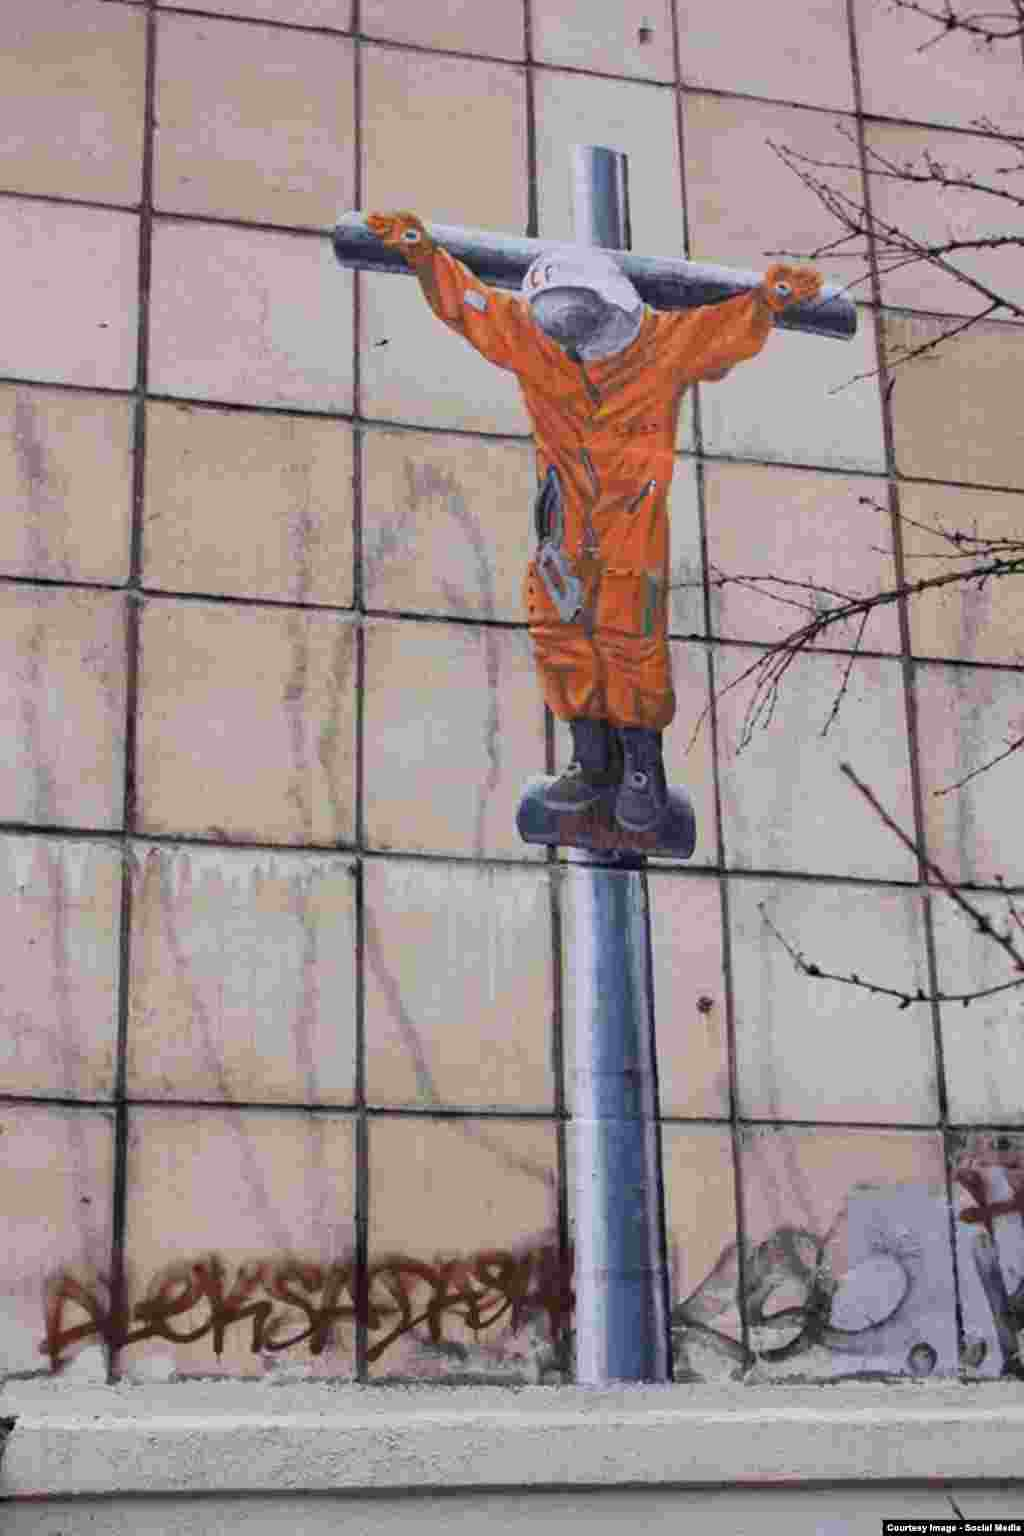 In 2015, Cosmonautics Day coincided with the Orthodox Easter. A Perm-based artist, Aleksandr Zhunev, depicted Gagarin crucified to mark the coincidence. He explained this gesture by saying that science and religion had been in opposition to each other, but now science had started to lose out in public opinion.